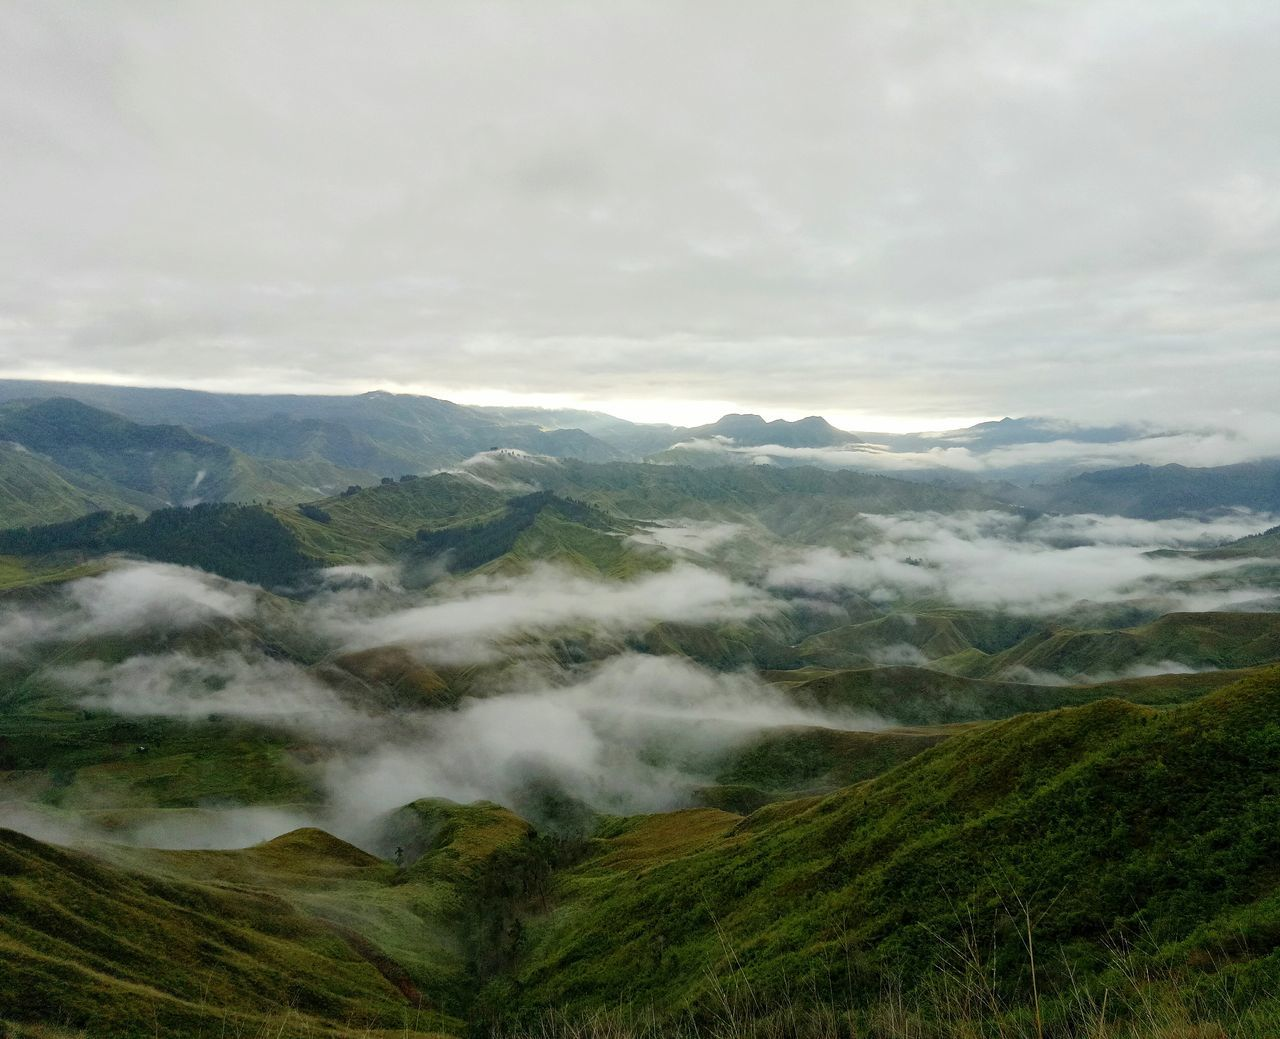 Panimahawaridge Panimahawa Bukidnon Malaybalay Mountain Nature Beauty In Nature Green Color Tree Forest Fog Mountain Range Cloud - Sky Sky Seaofclouds SeaOfClouds GodsCreations Morning Scenics Outdoors Adventure Adventuretime Trekking